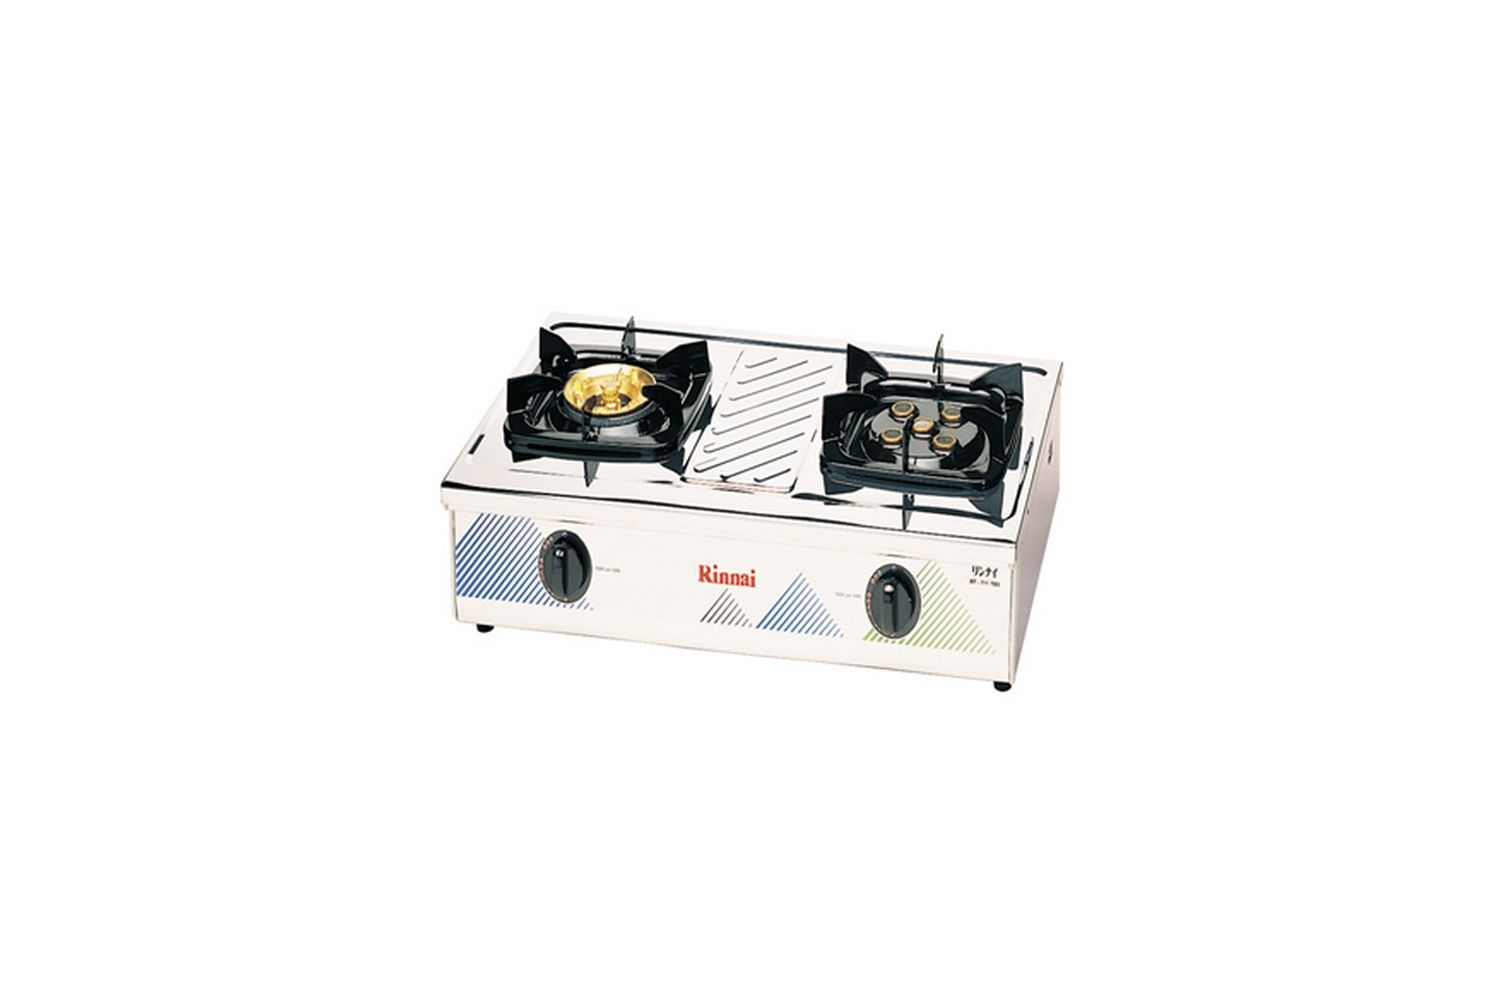 Gas Stoves Eg 18260 In 2021 Gas Stove Stove Gas